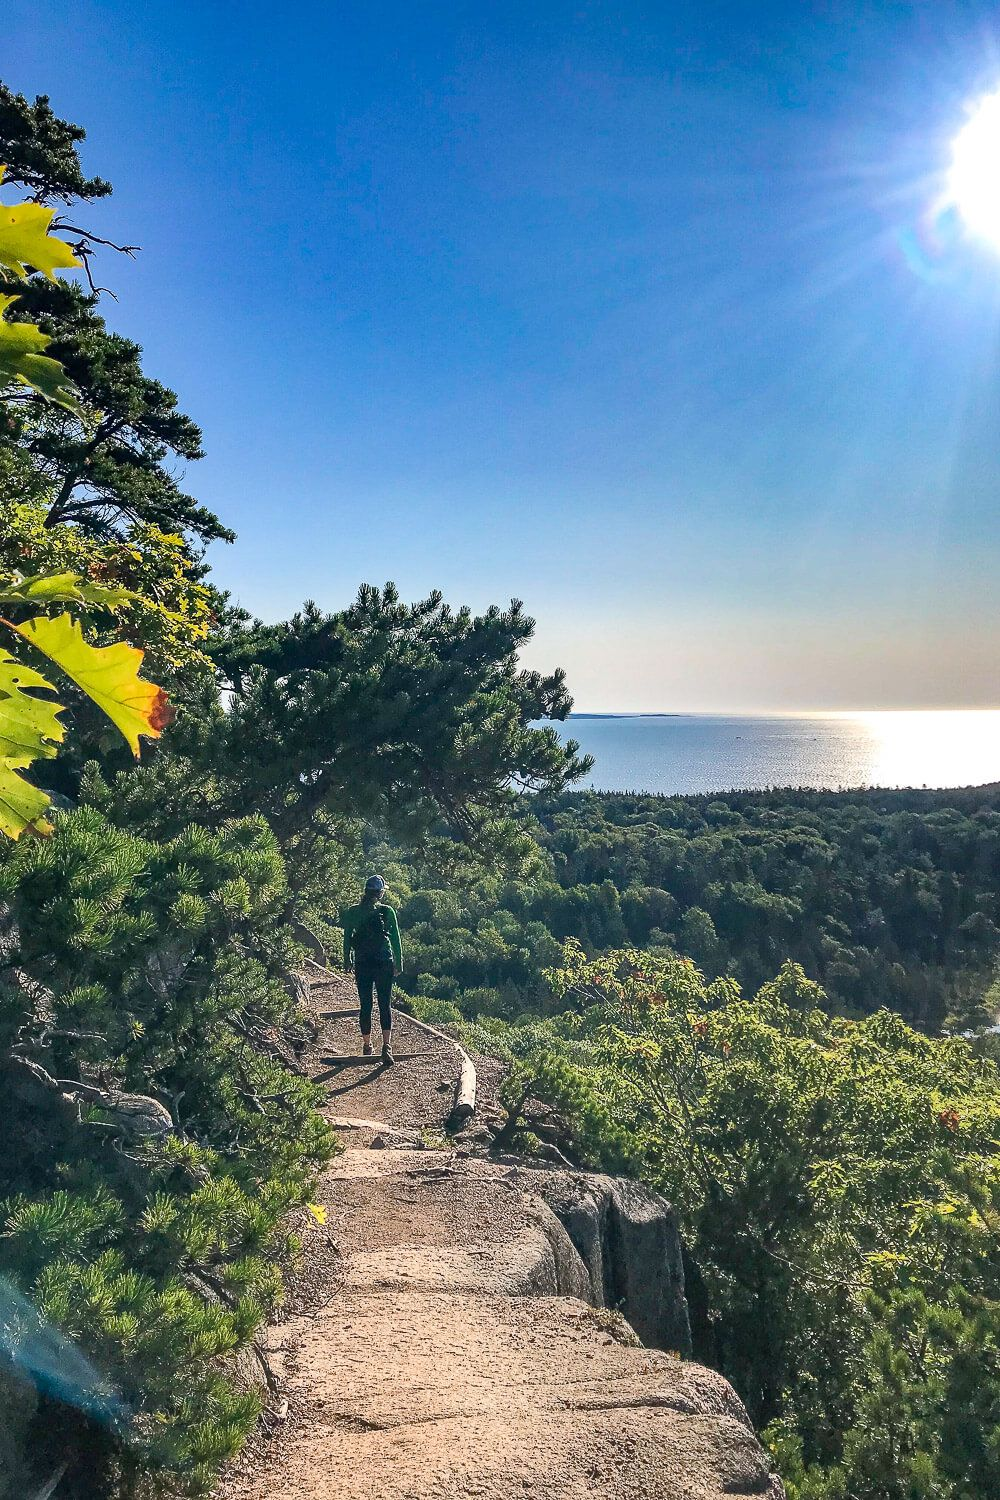 Beehive Trail: One day in acadia national park